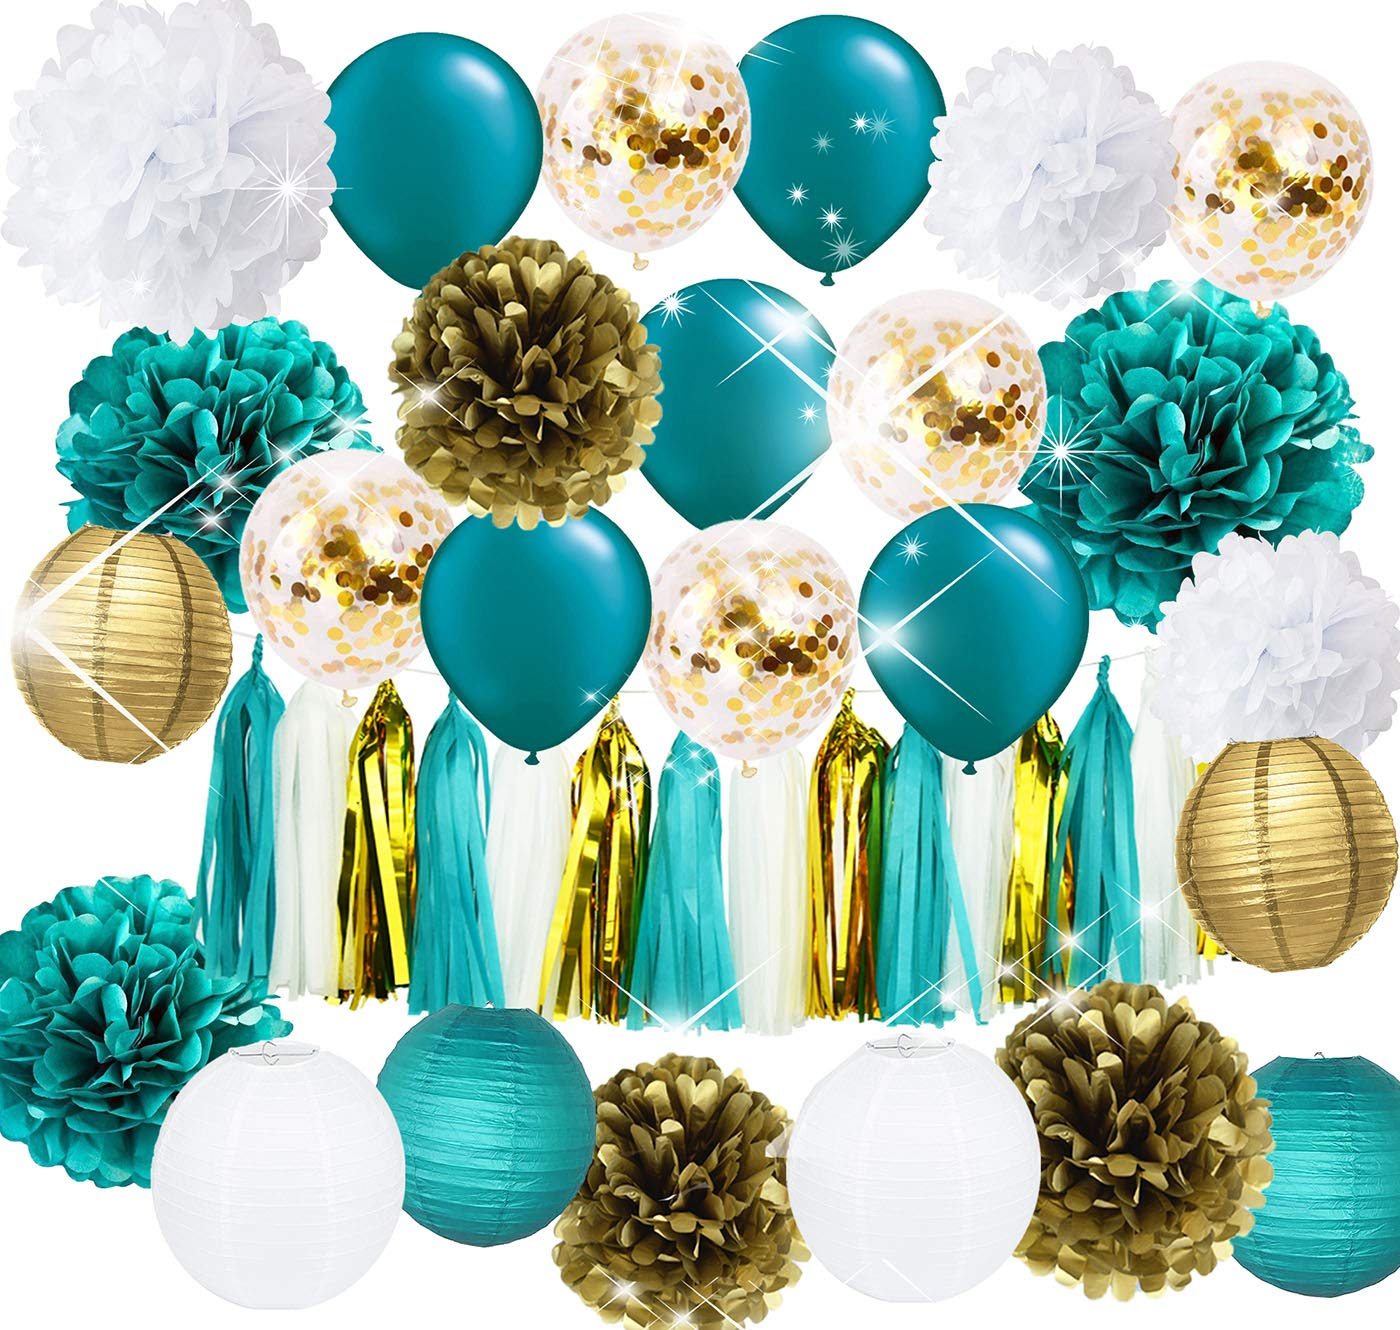 Teal Gold and Gold Confetti Latex Balloons Teal Balloons Tissue Pom Poms Lanterns Tassel Garland Gold and Teal Baby Shower Wedding Bridal Shower Teal Engagement/Teal Gold Birthday Party Decorations by Furuix